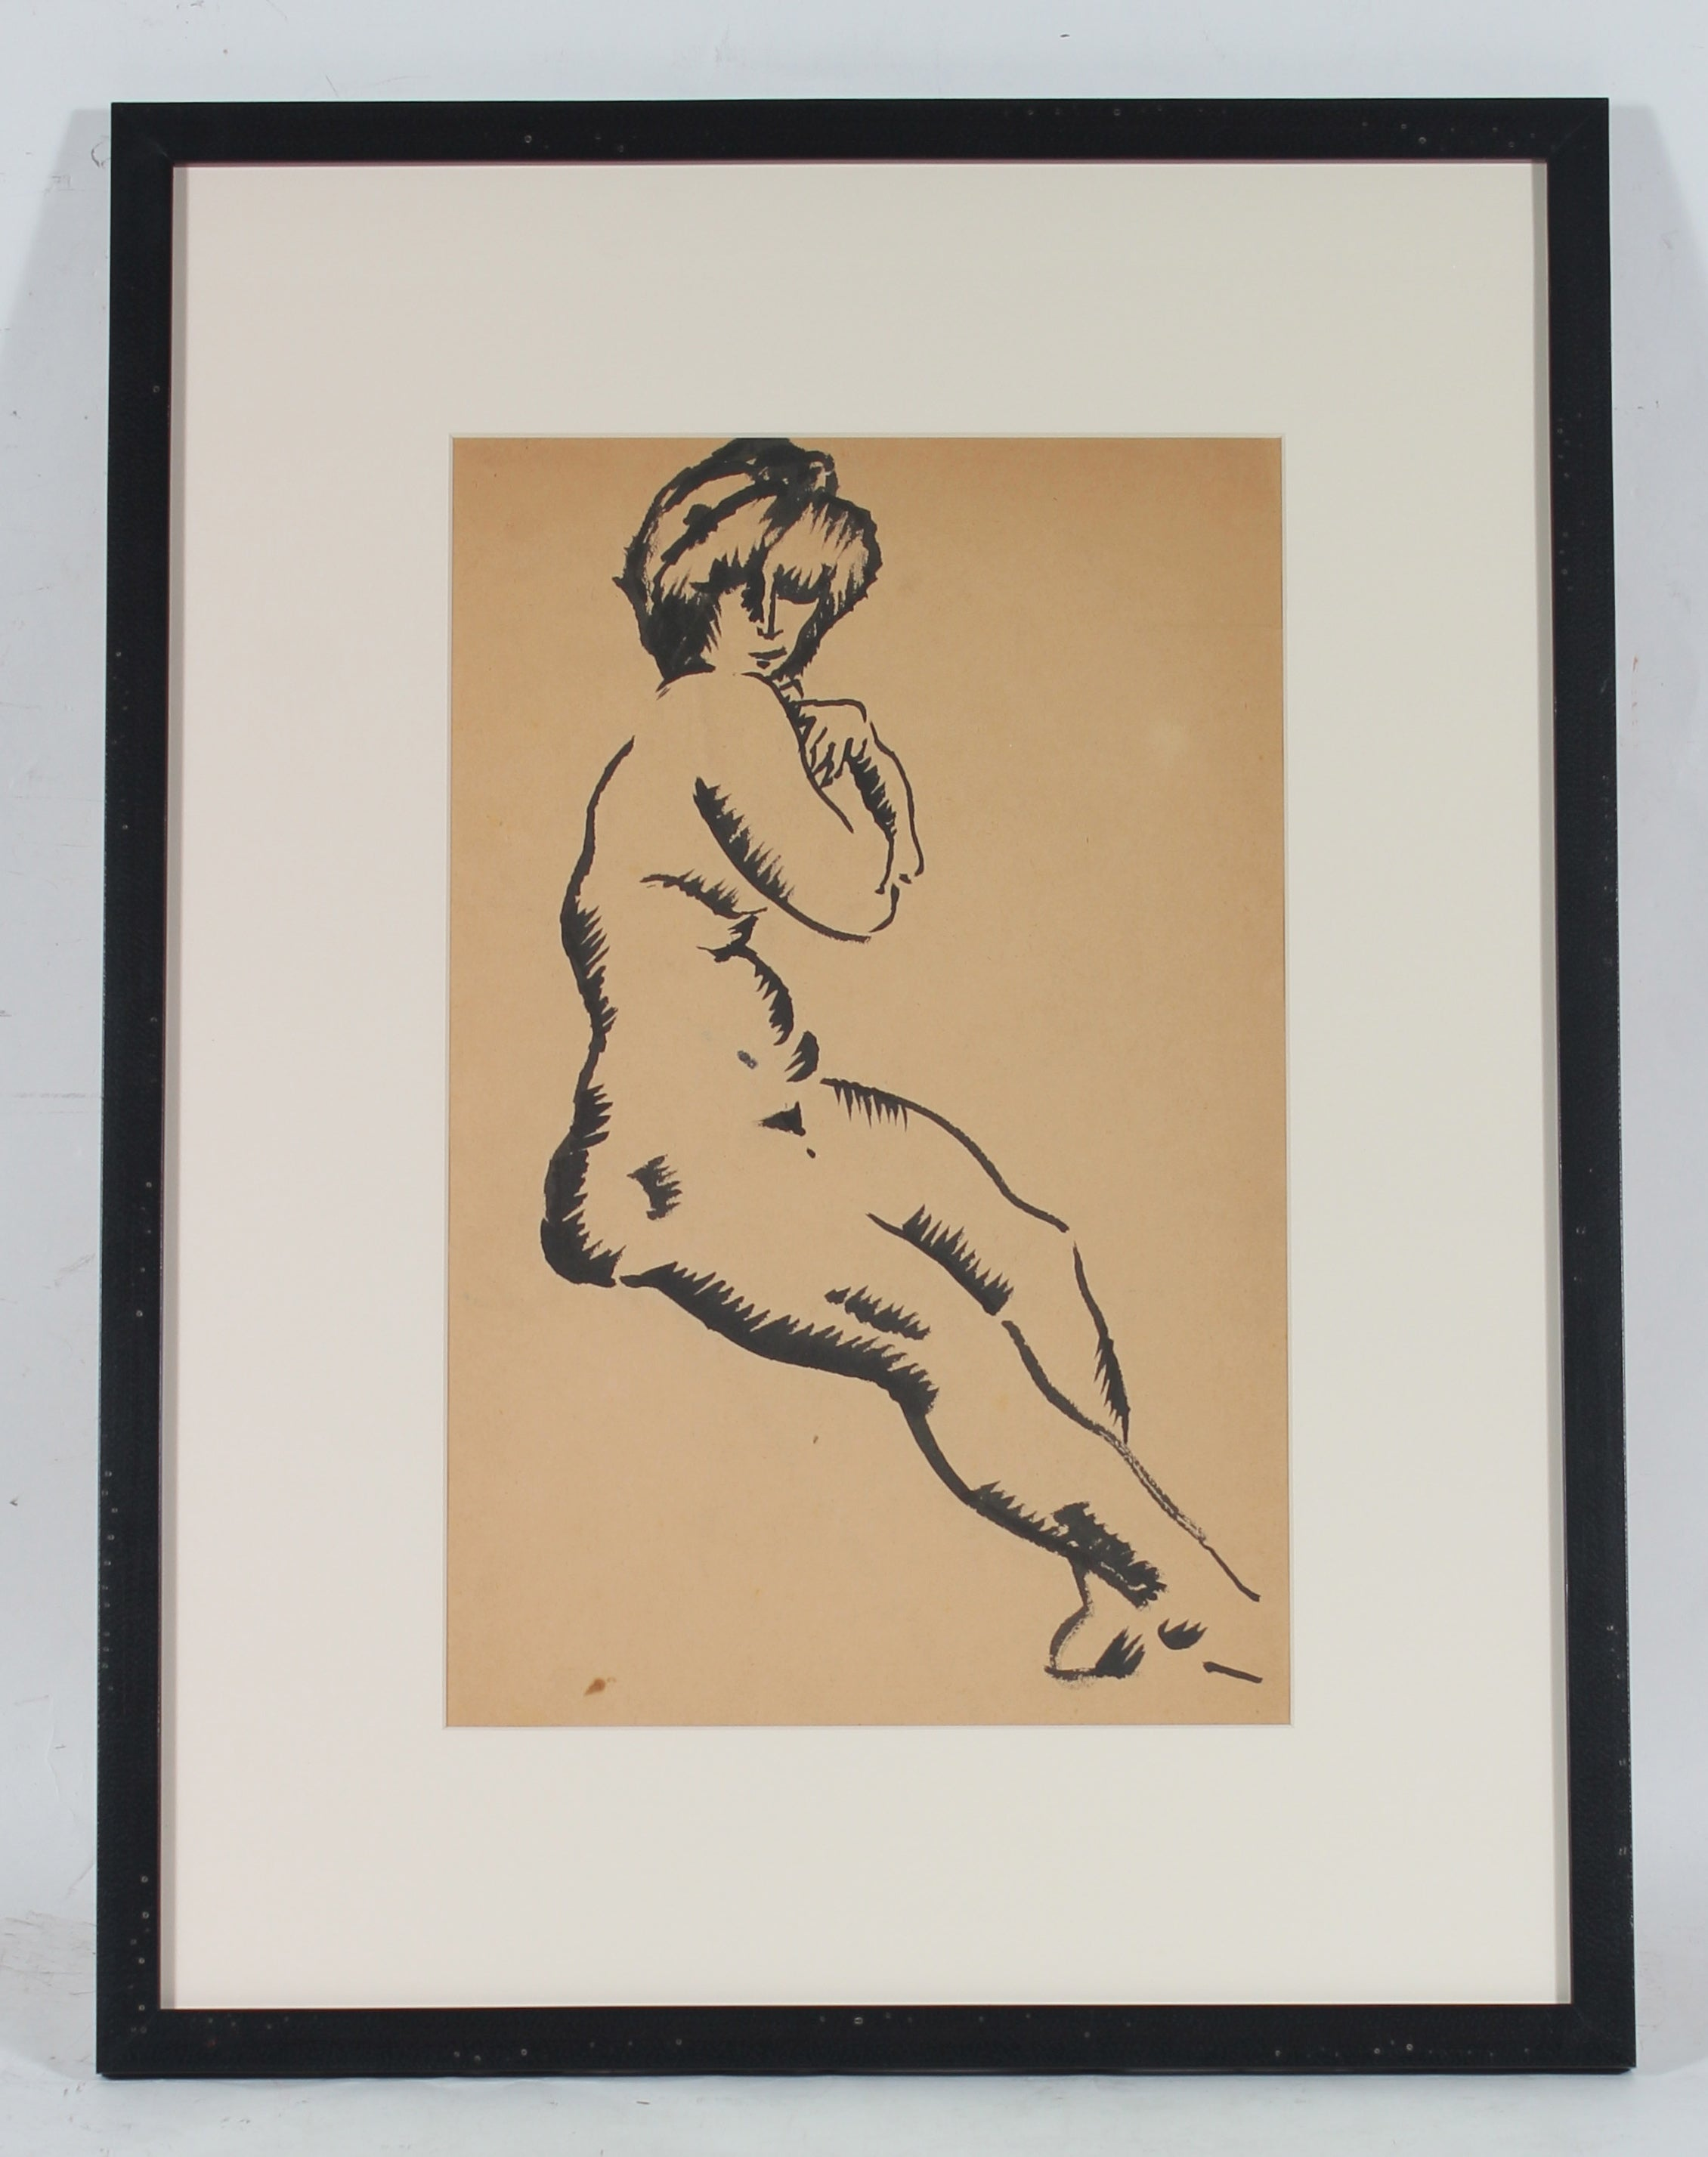 Vienna Secessionist Nude in Ink, Circa Early 20th Century